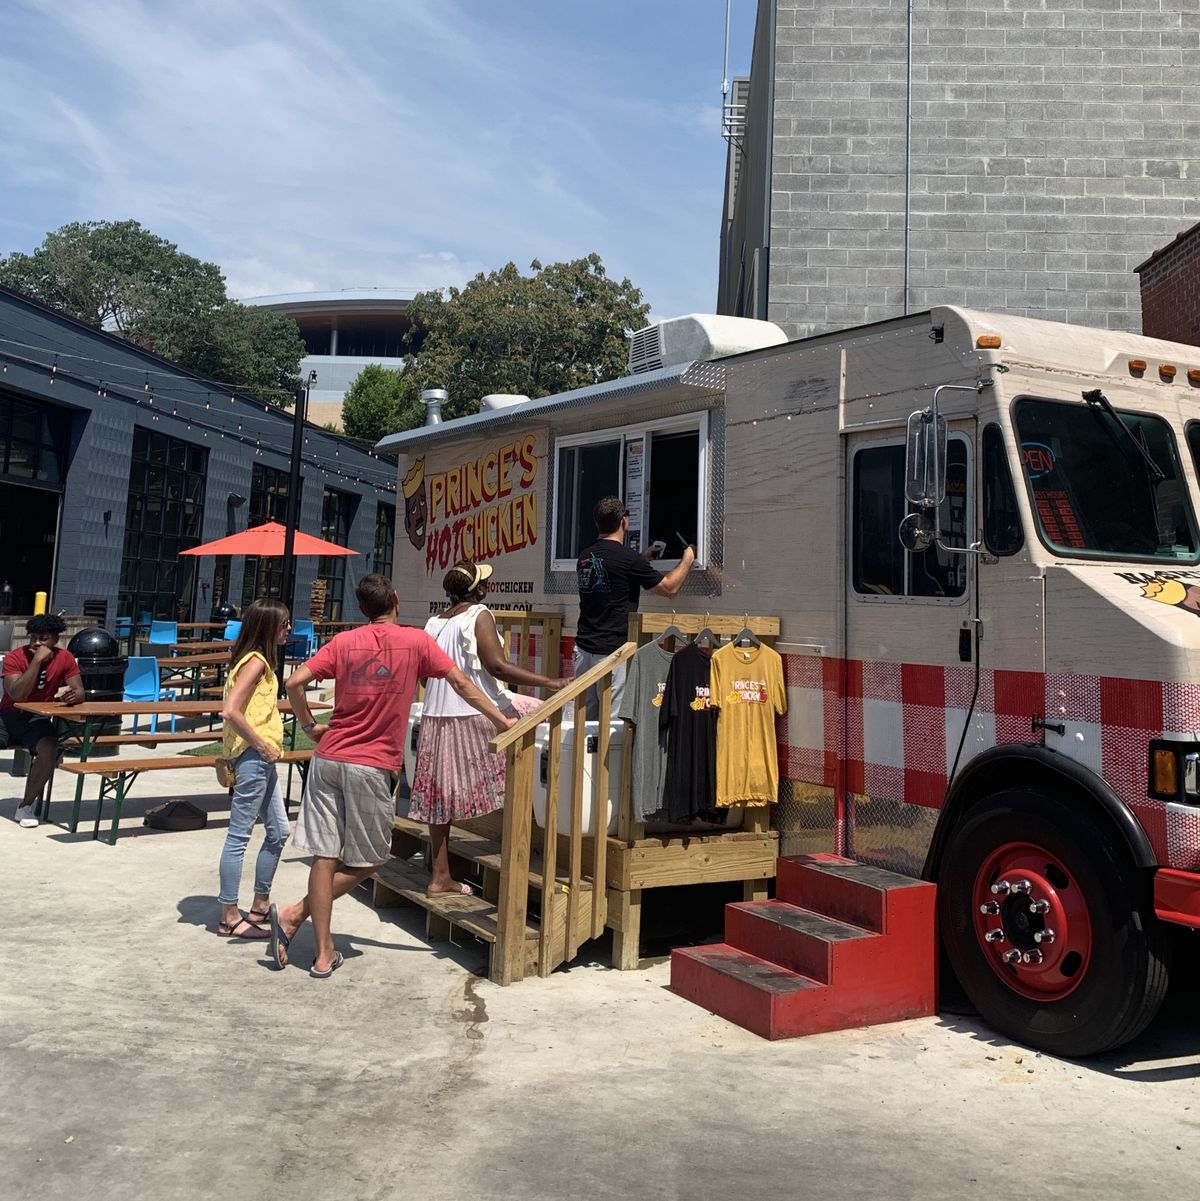 Prince's hot chicken food truck, a red umbrella and patio tables, short line of people